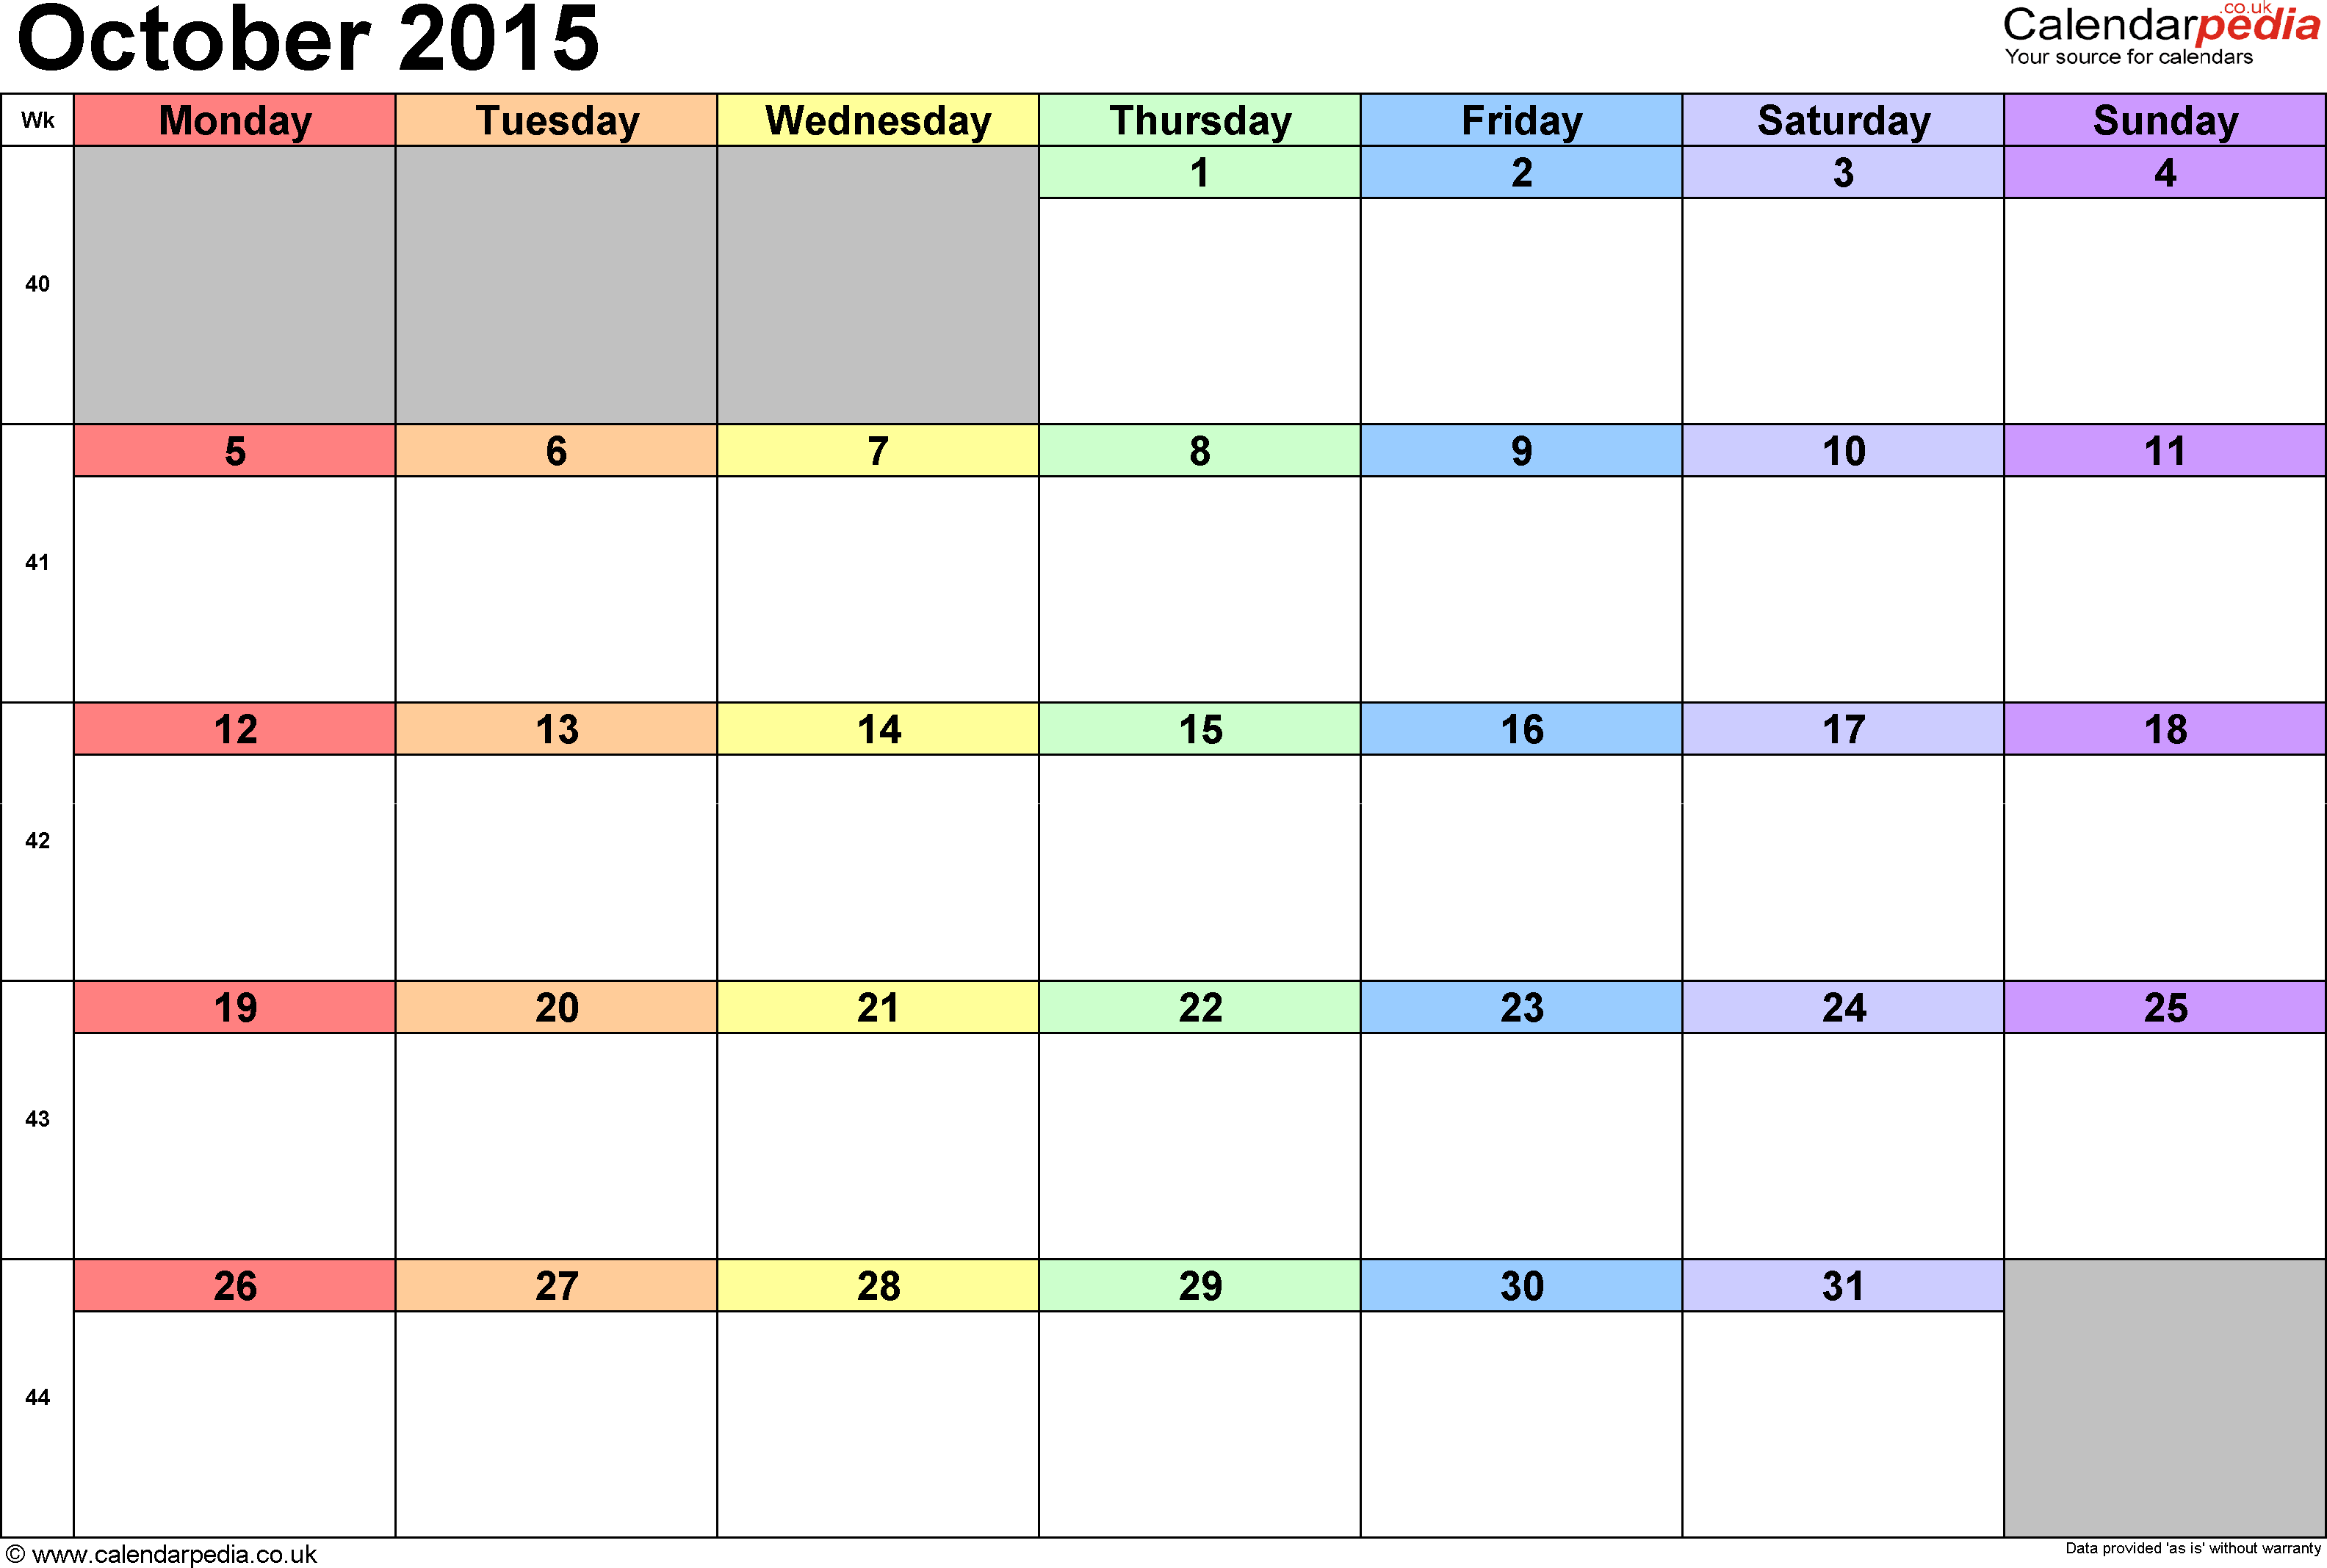 Calendar October 2015, landscape orientation, 1 page, with UK bank holidays and week numbers